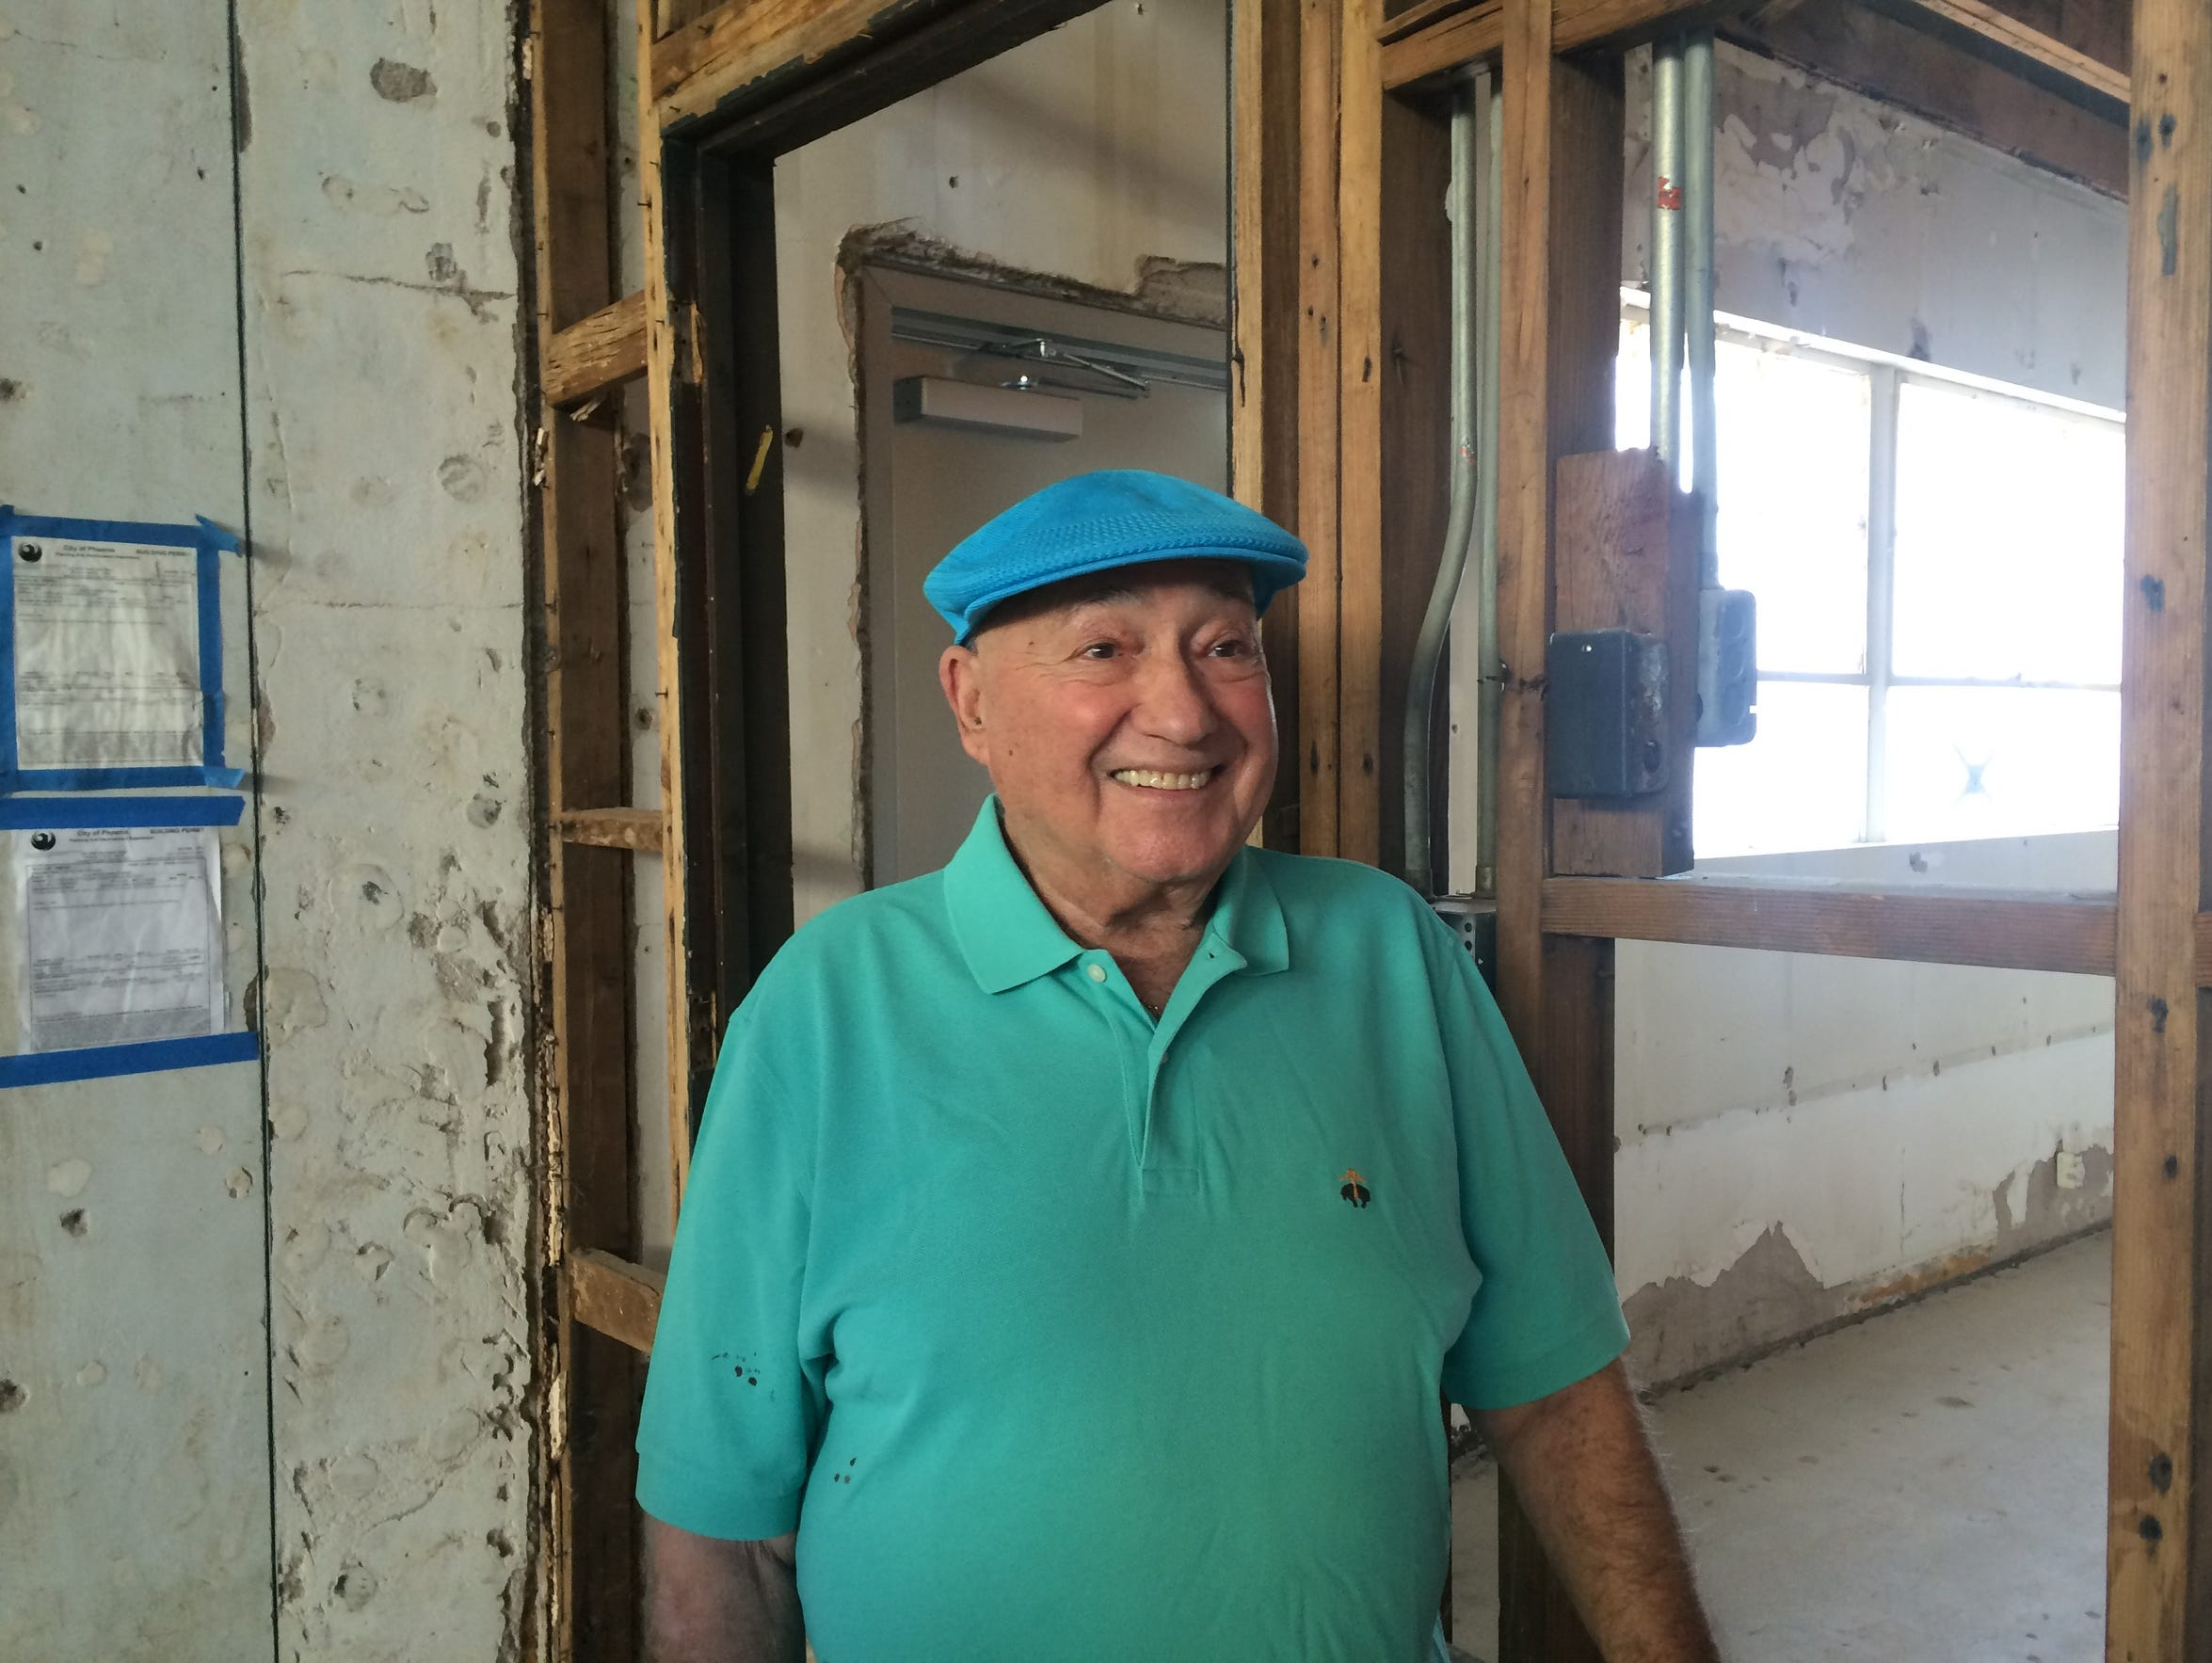 Alan Bandler tours the Beth Hebrew synagogue for the